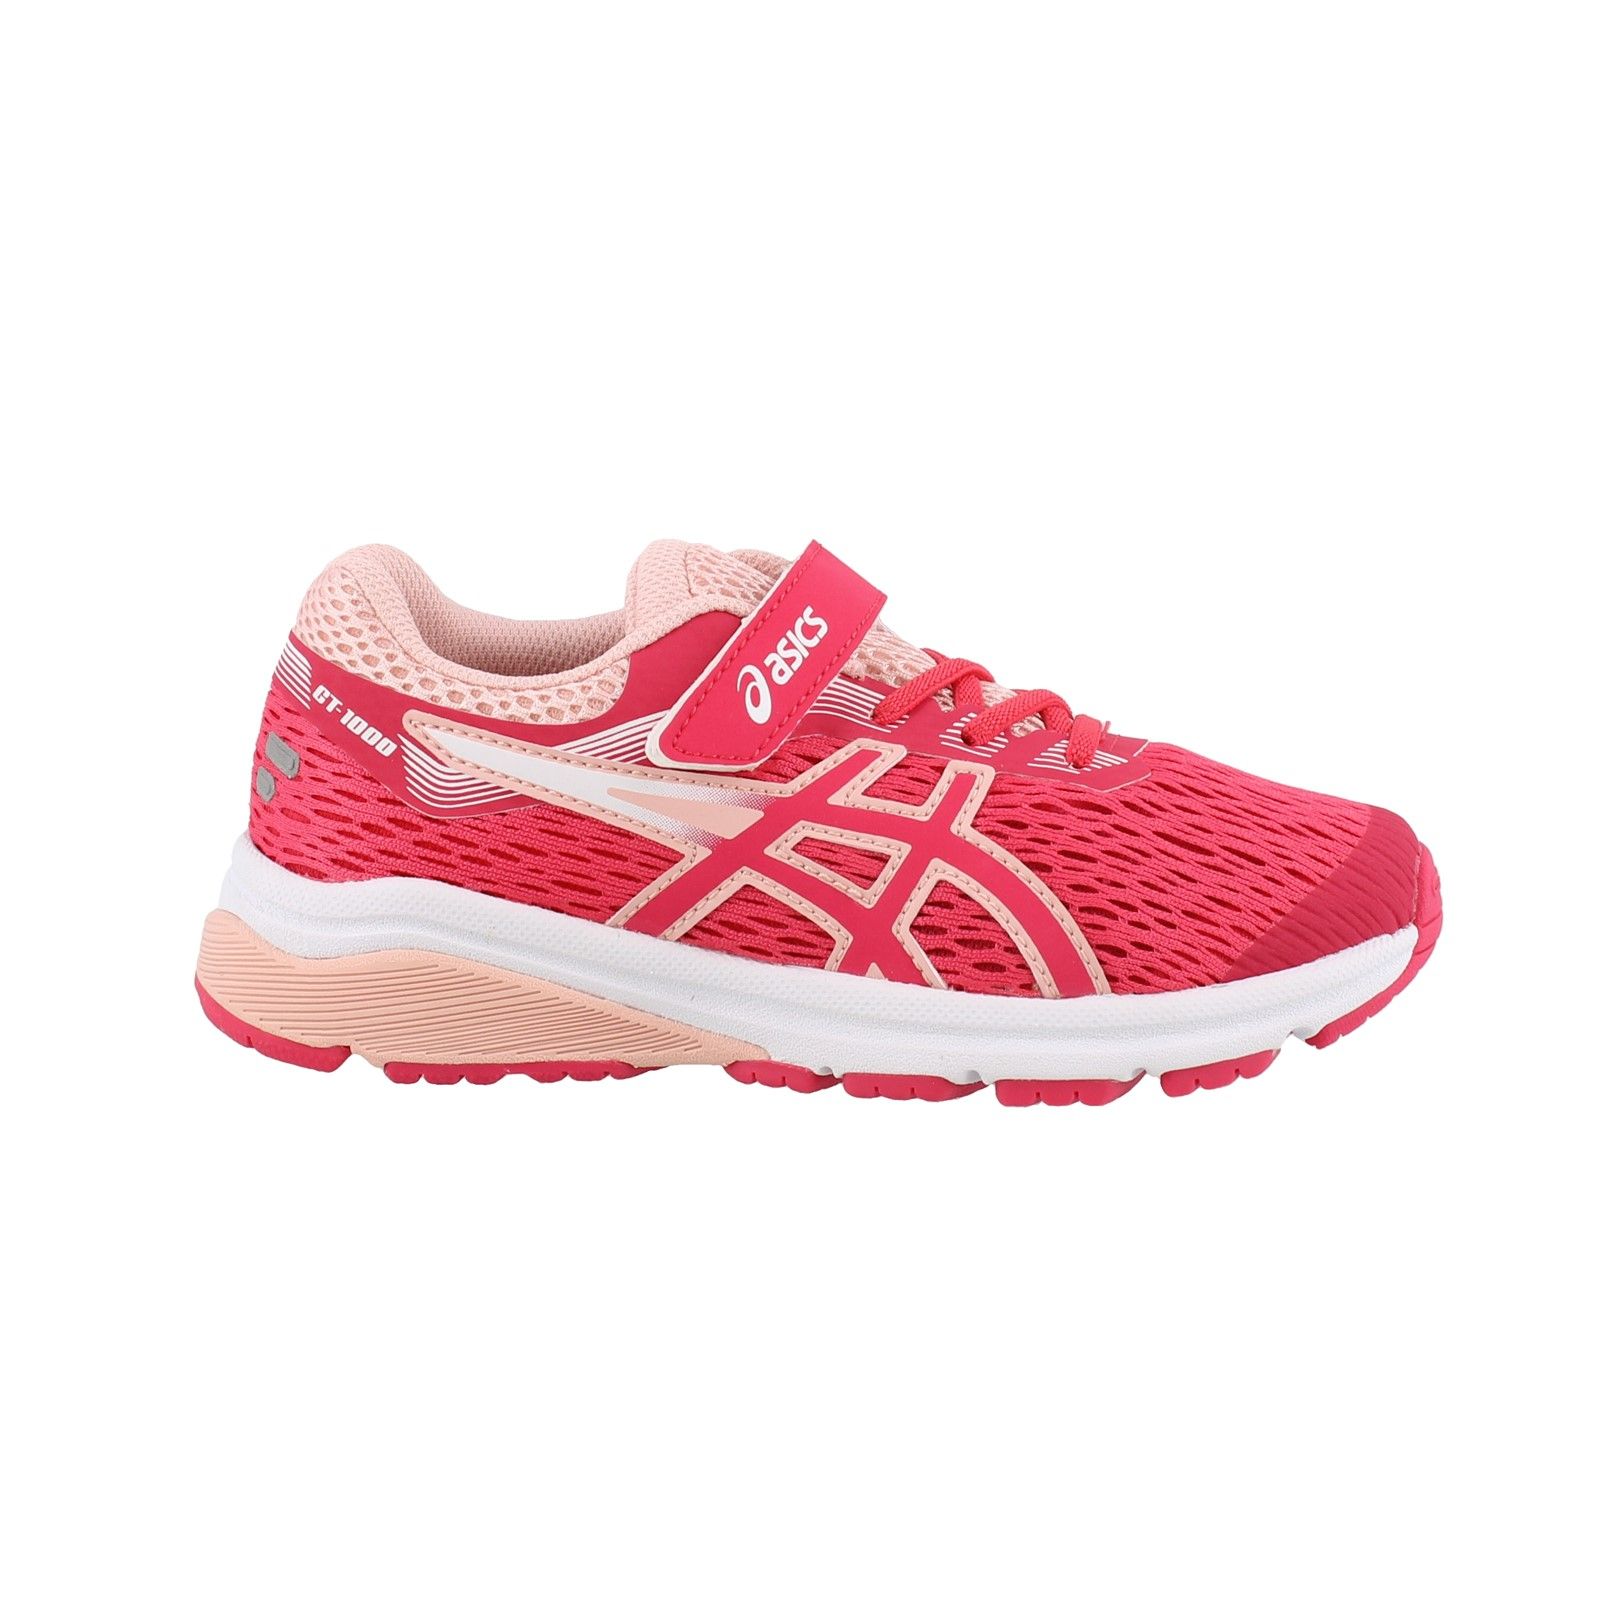 Girl's Asics, GT 1000 7 Running Sneakers